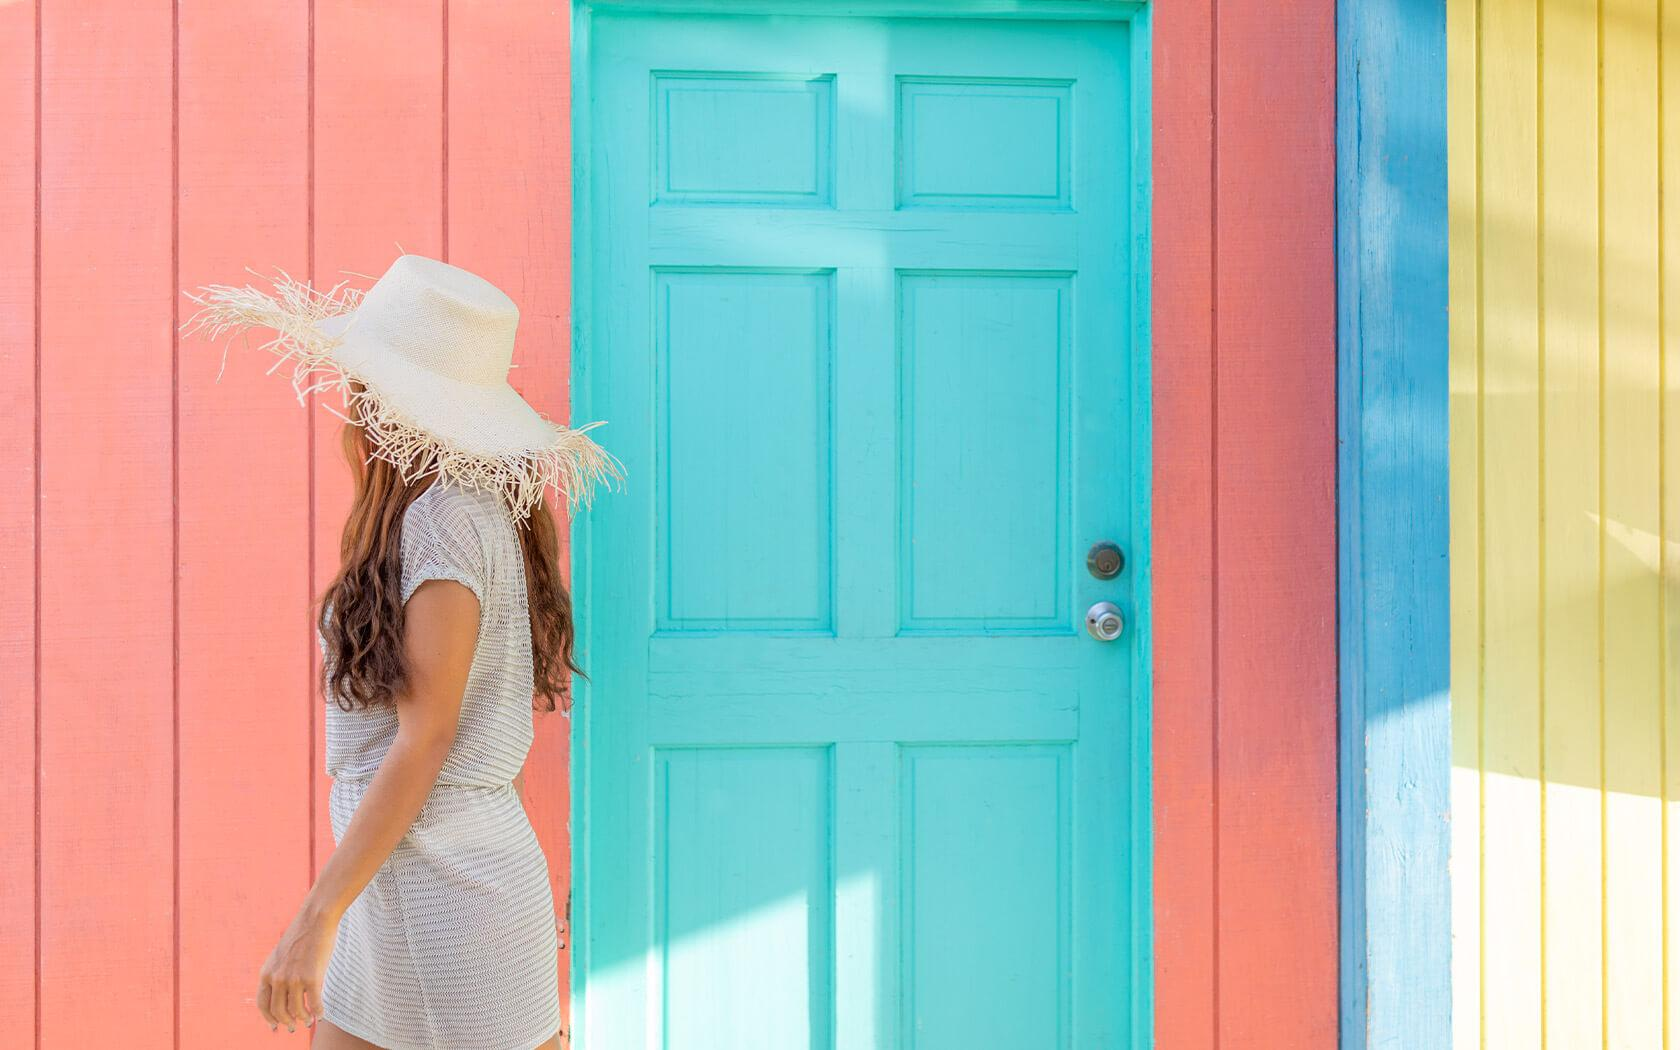 woman in a straw hat walking past brightly colored walls and door